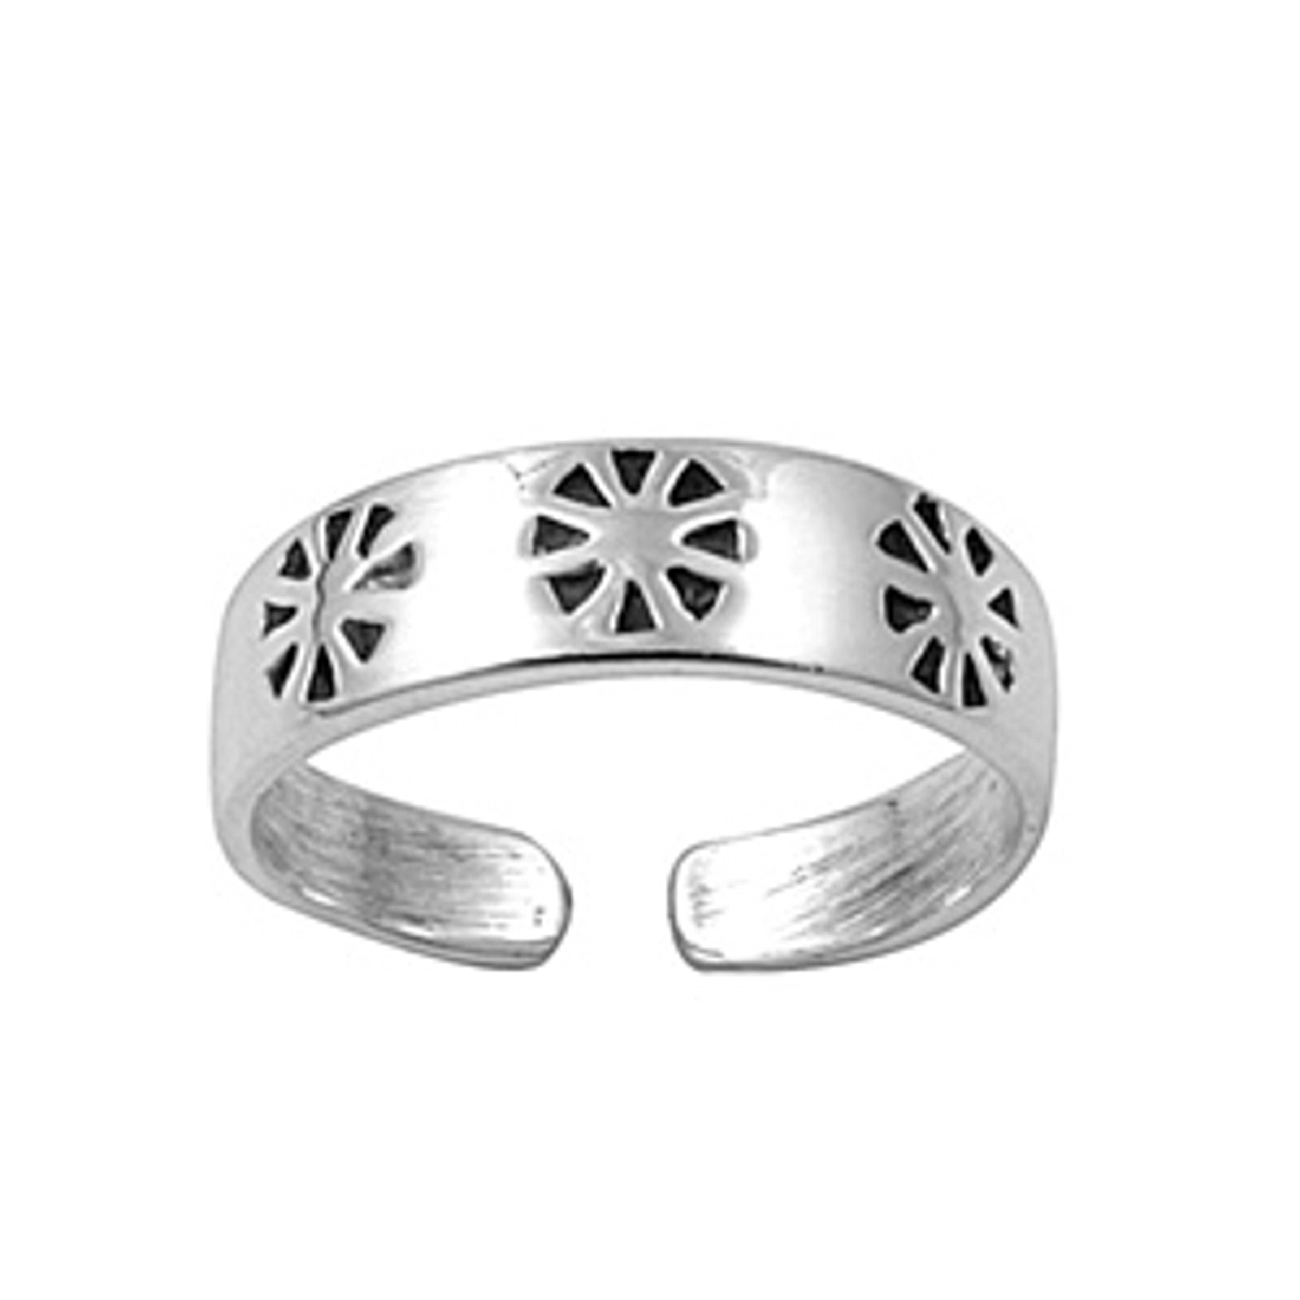 Cut Out Flower Or Sunburst Adjustable Toe Ring